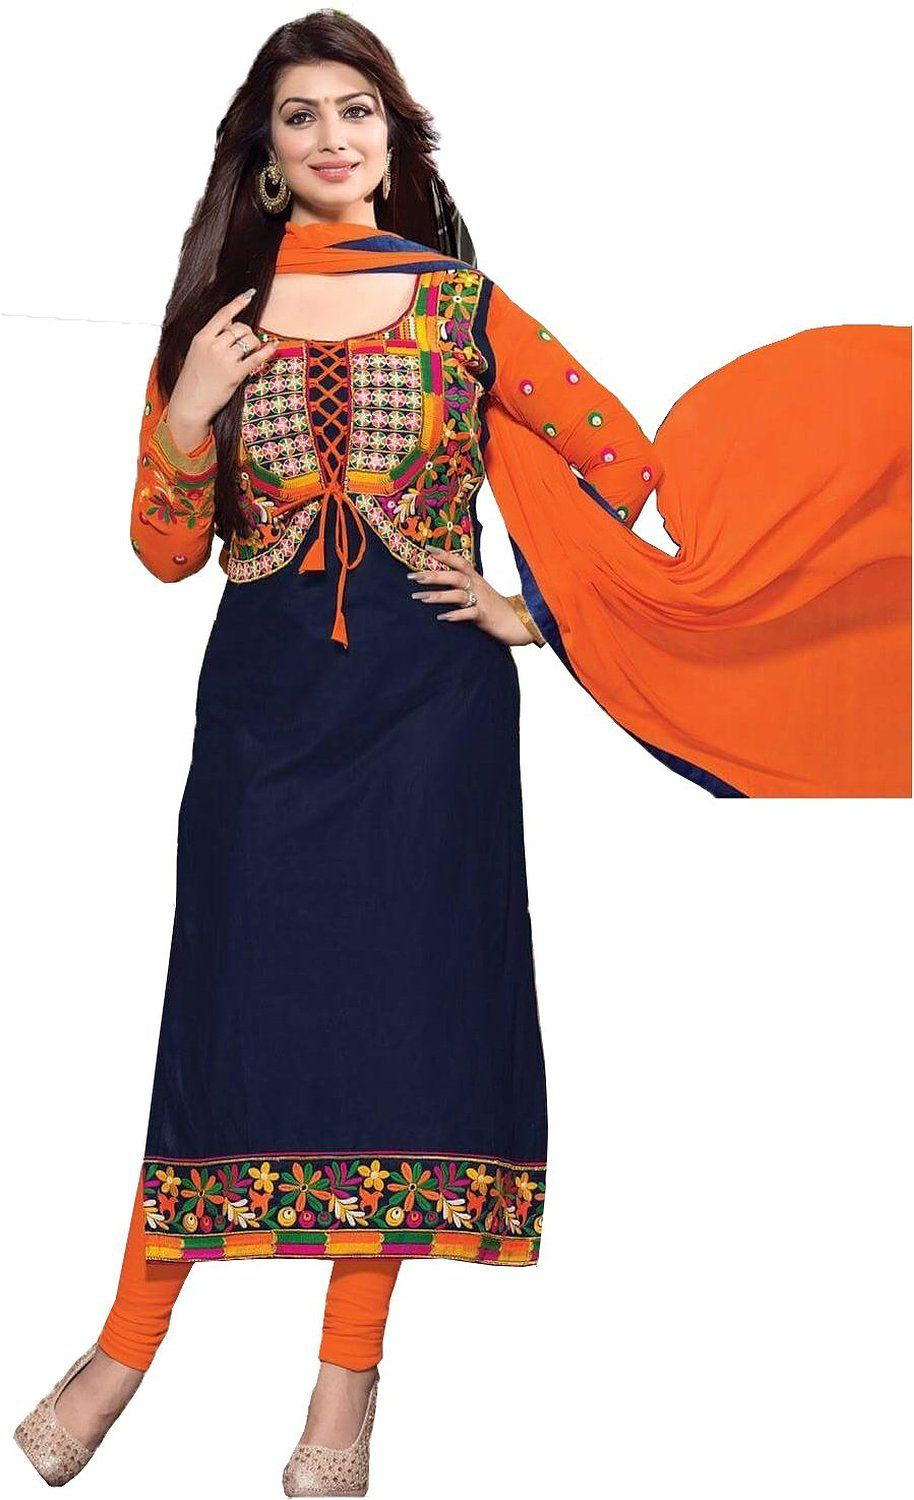 Image for Best Fabric Agent In Punjab +918957000006